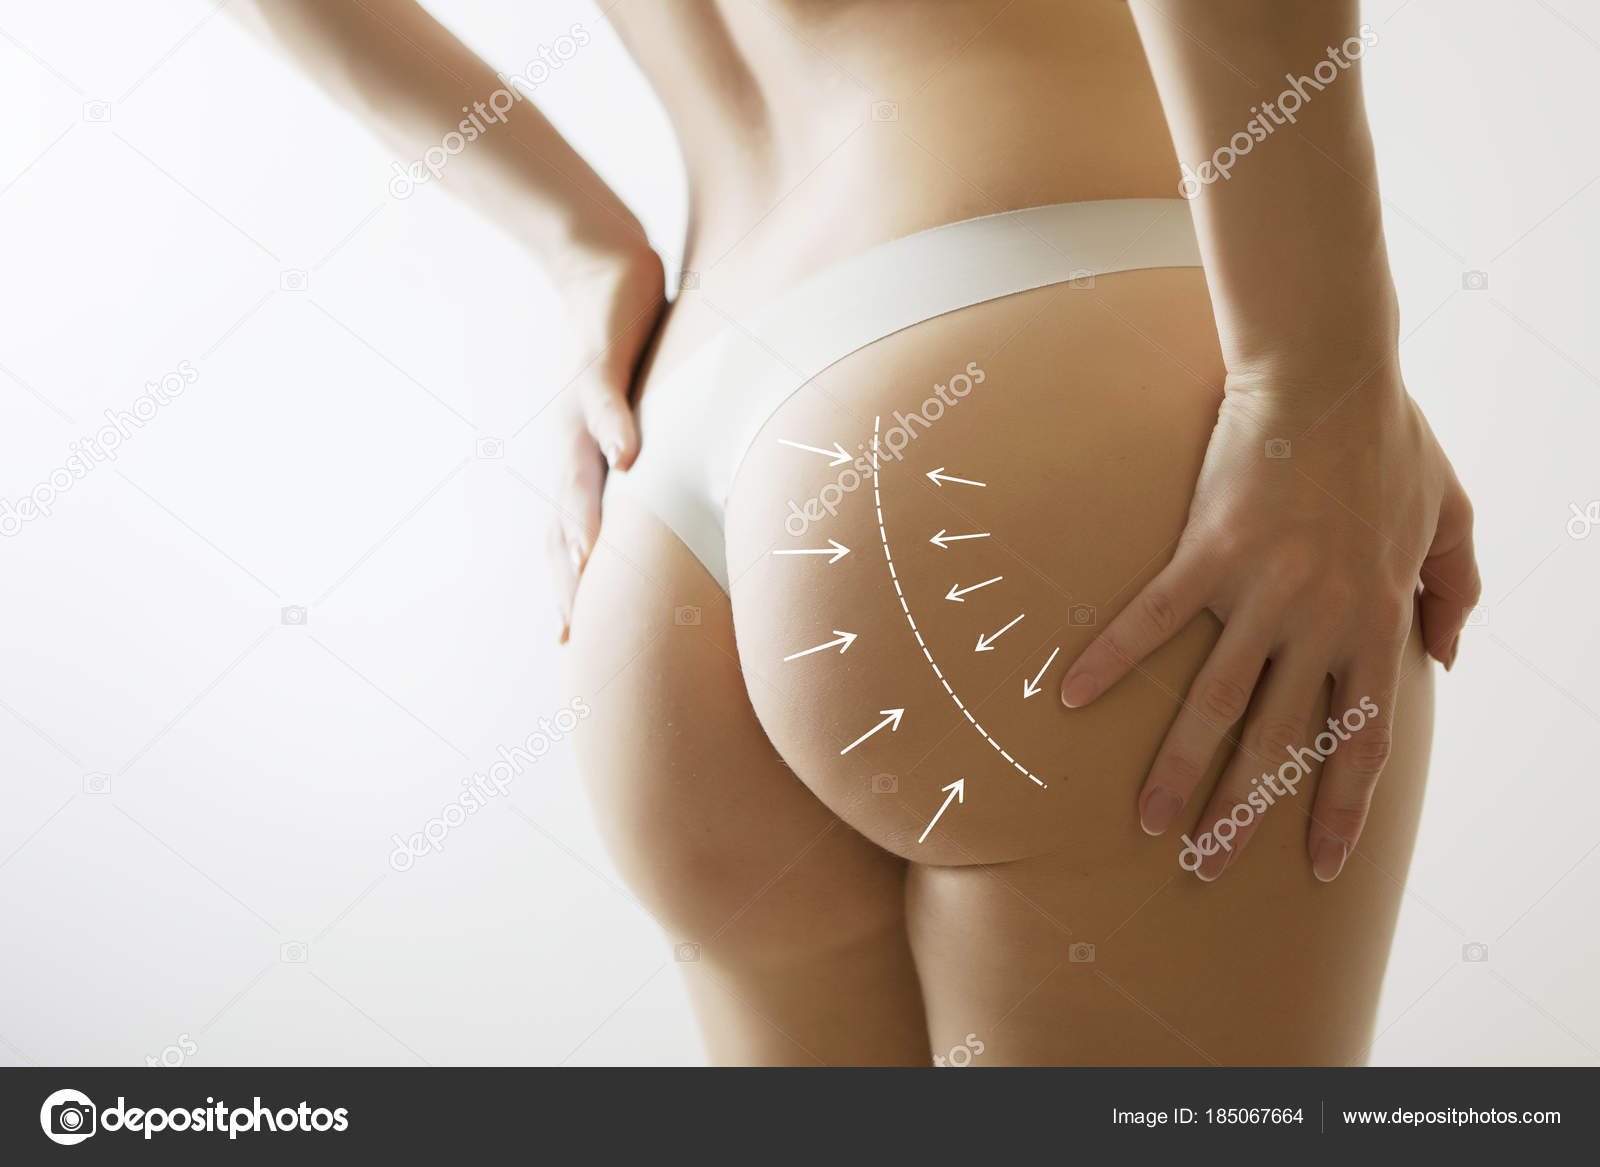 Does fasting help lose belly fat photo 3